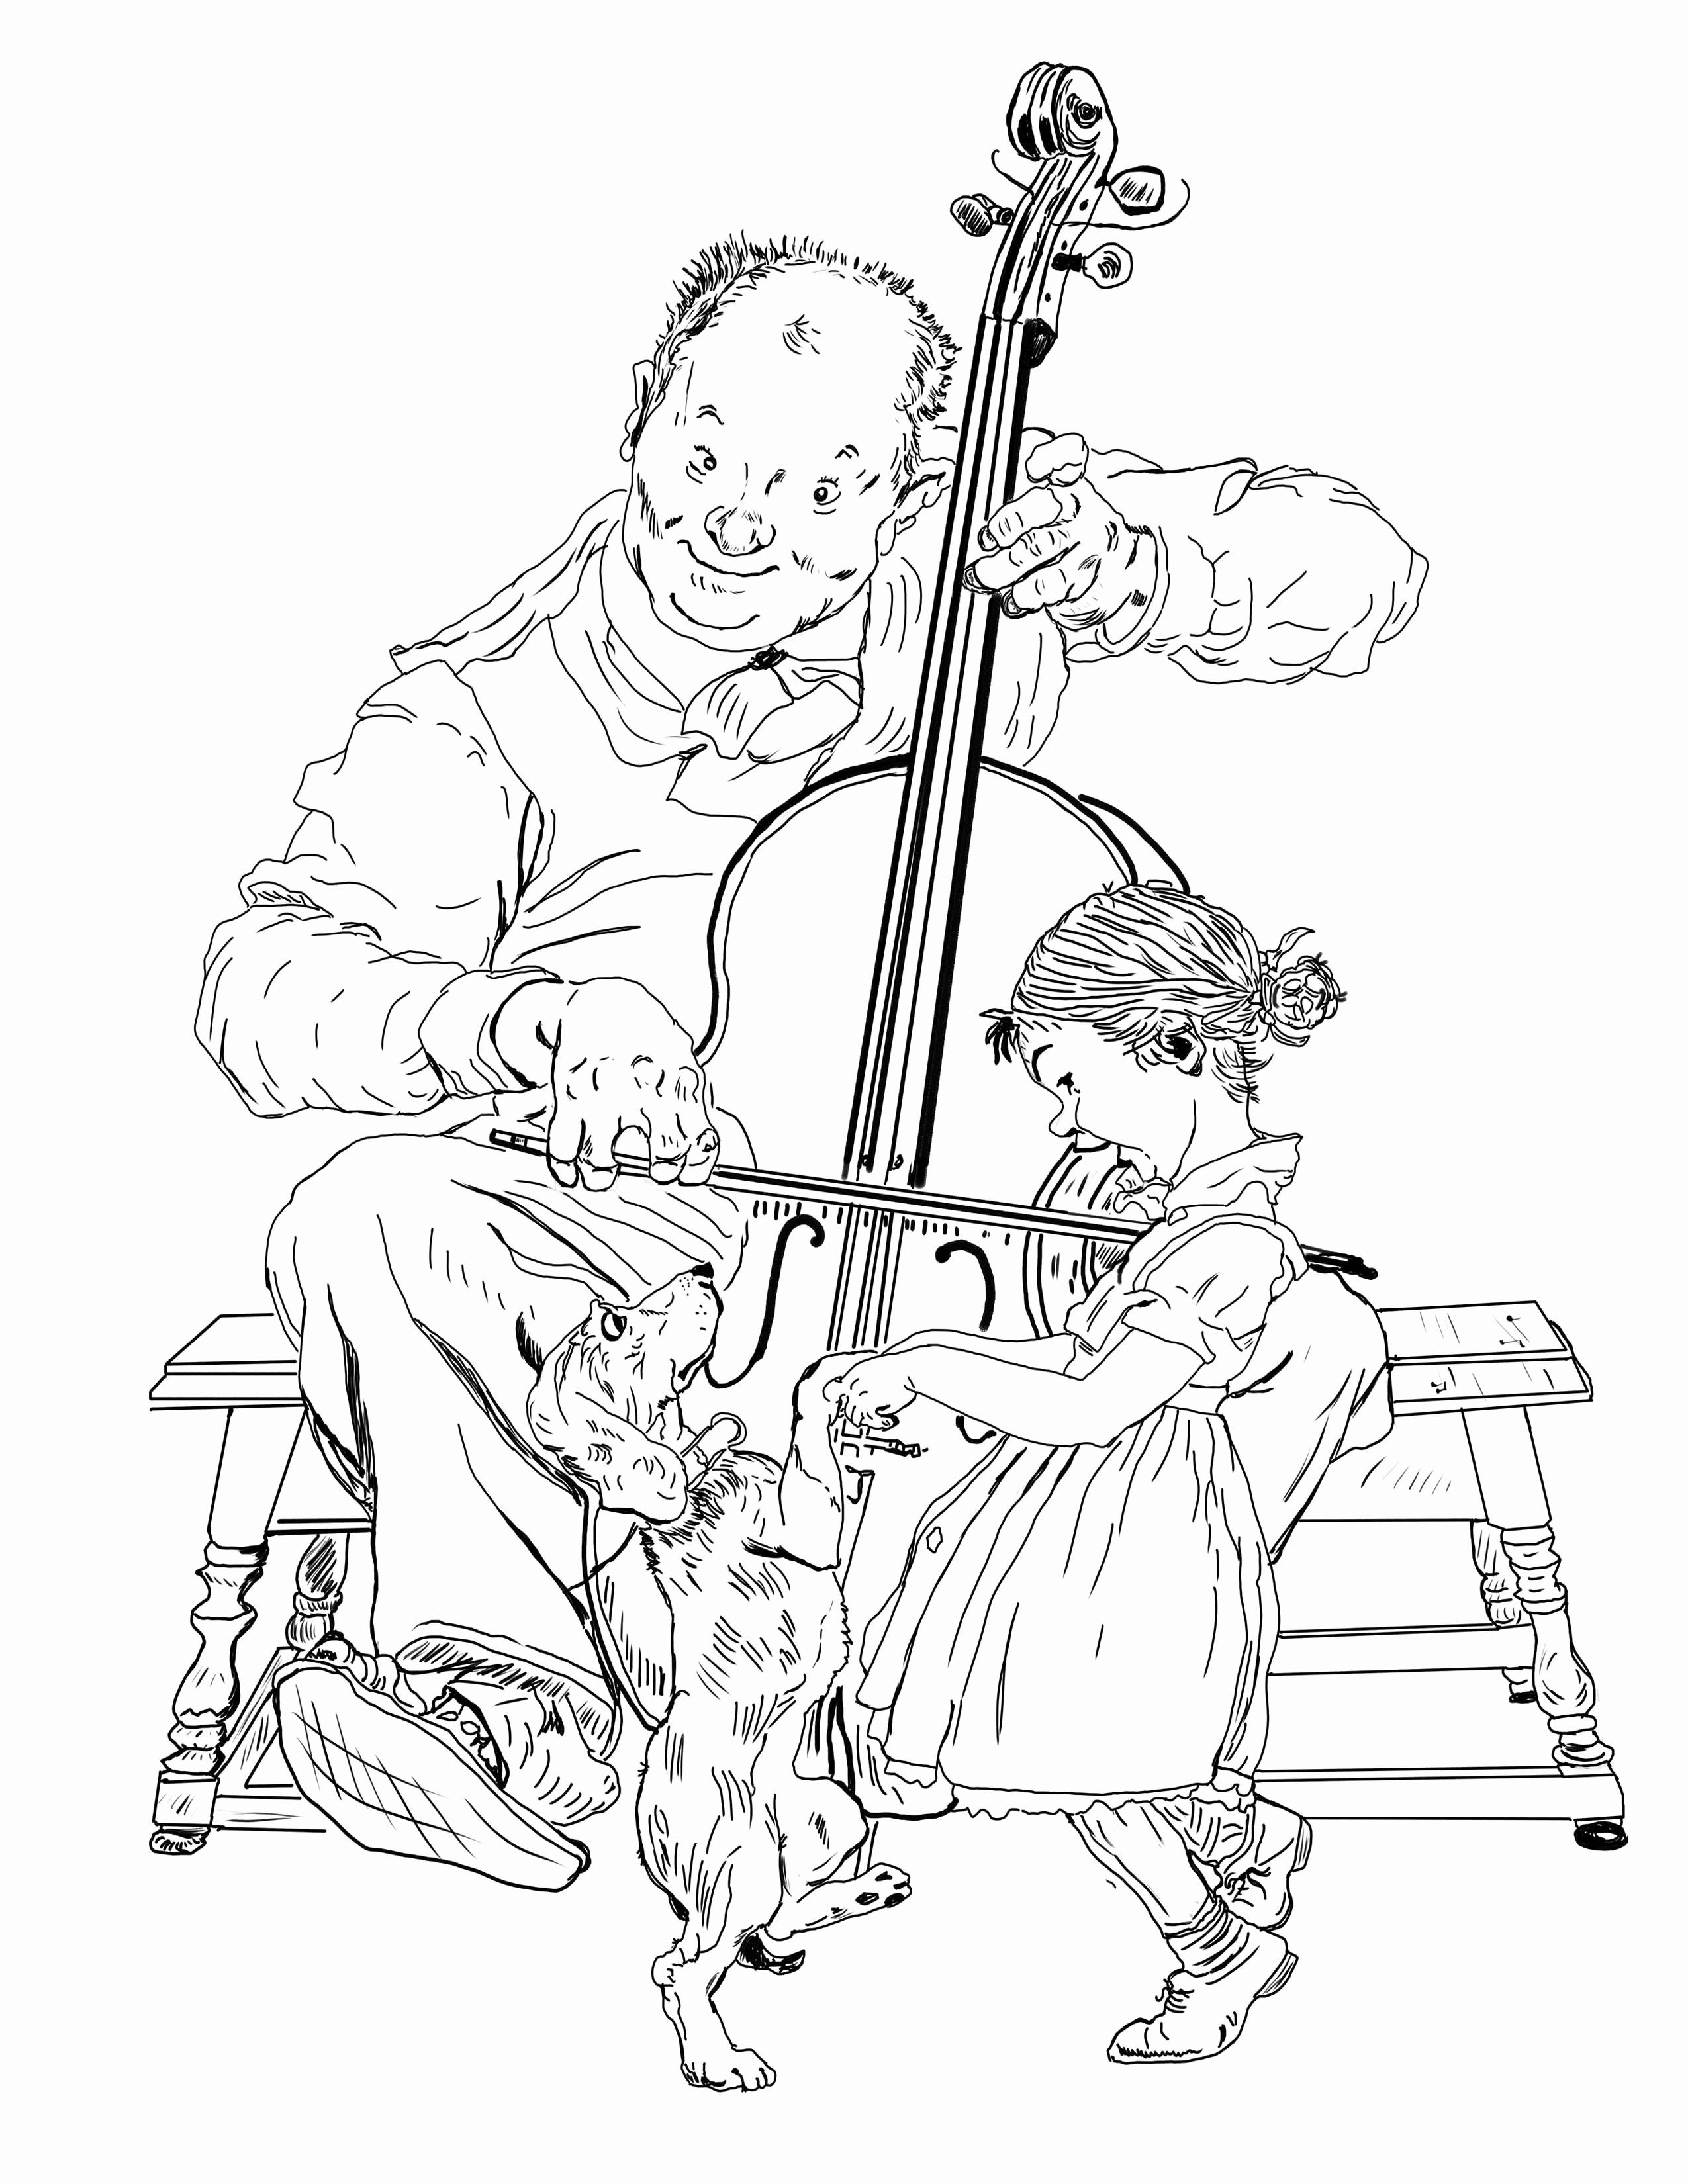 Dover History Coloring Books Best Of Coloring Page Adapted From A Norman Rockwell Painting Page In 2020 Coloring Books Norman Rockwell Paintings Coloring Pages